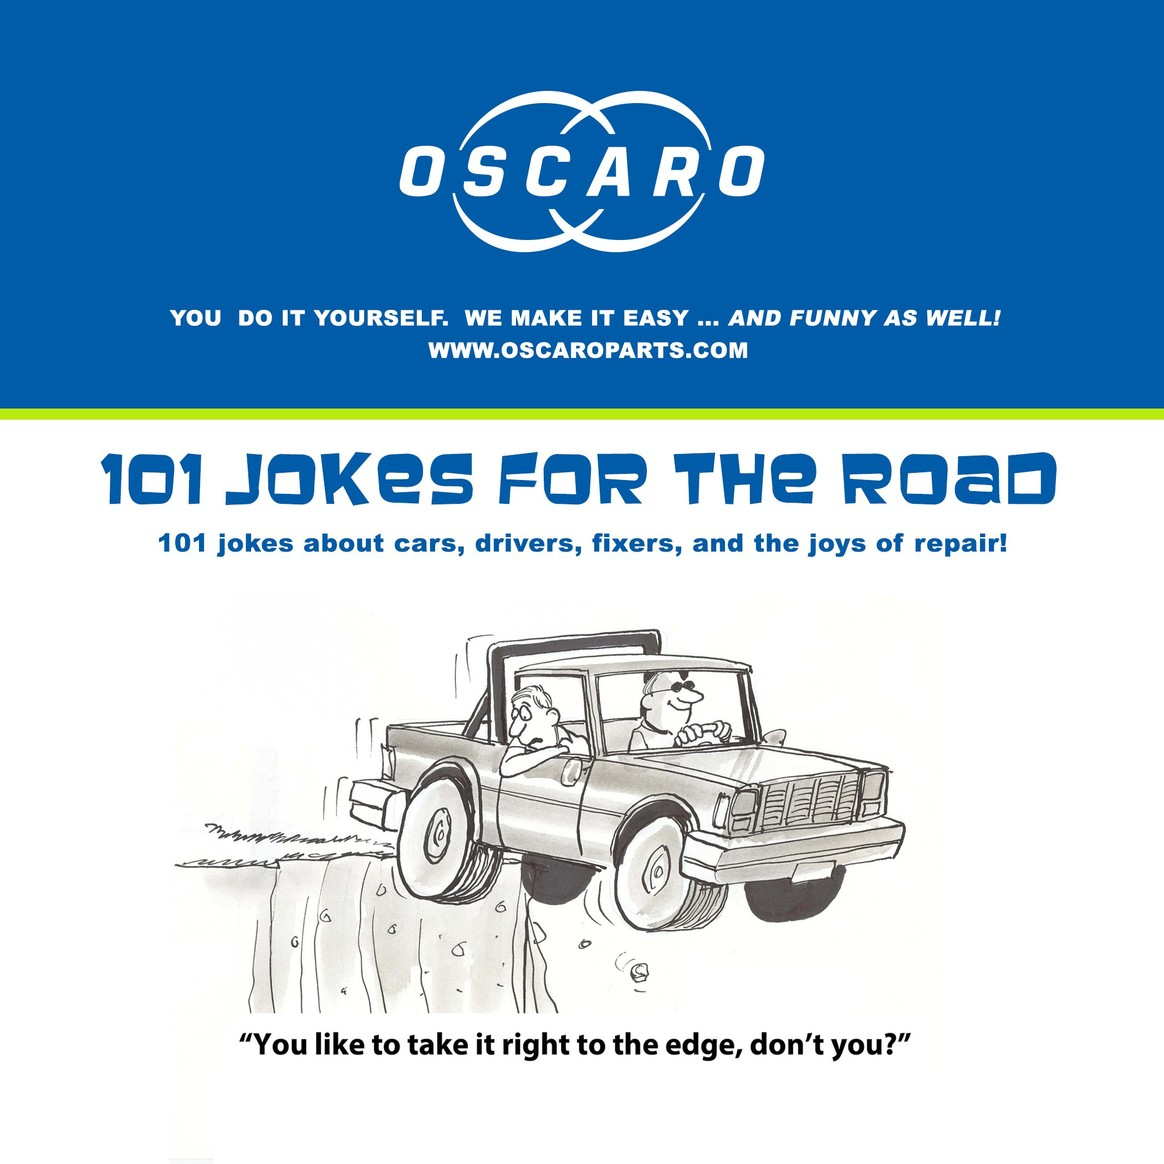 101 Jokes For The Road